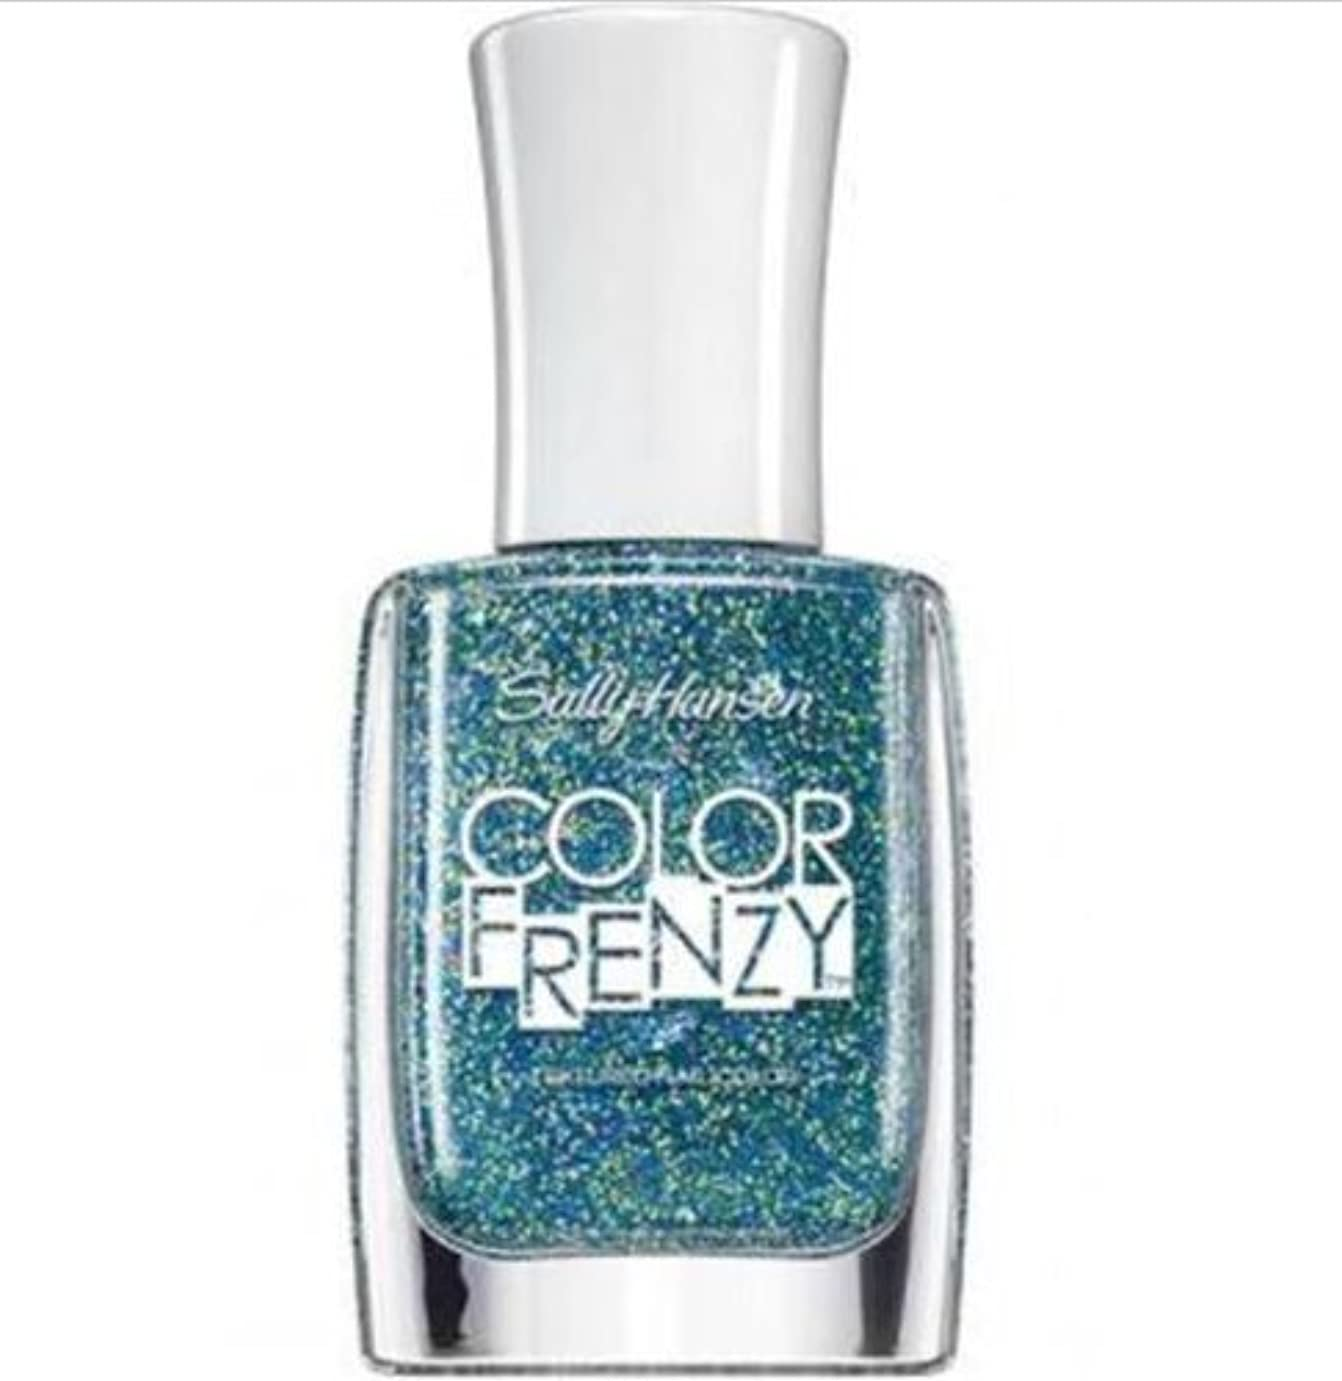 SALLY HANSEN Color Frenzy Textured Nail Color - Sea Salt (並行輸入品)